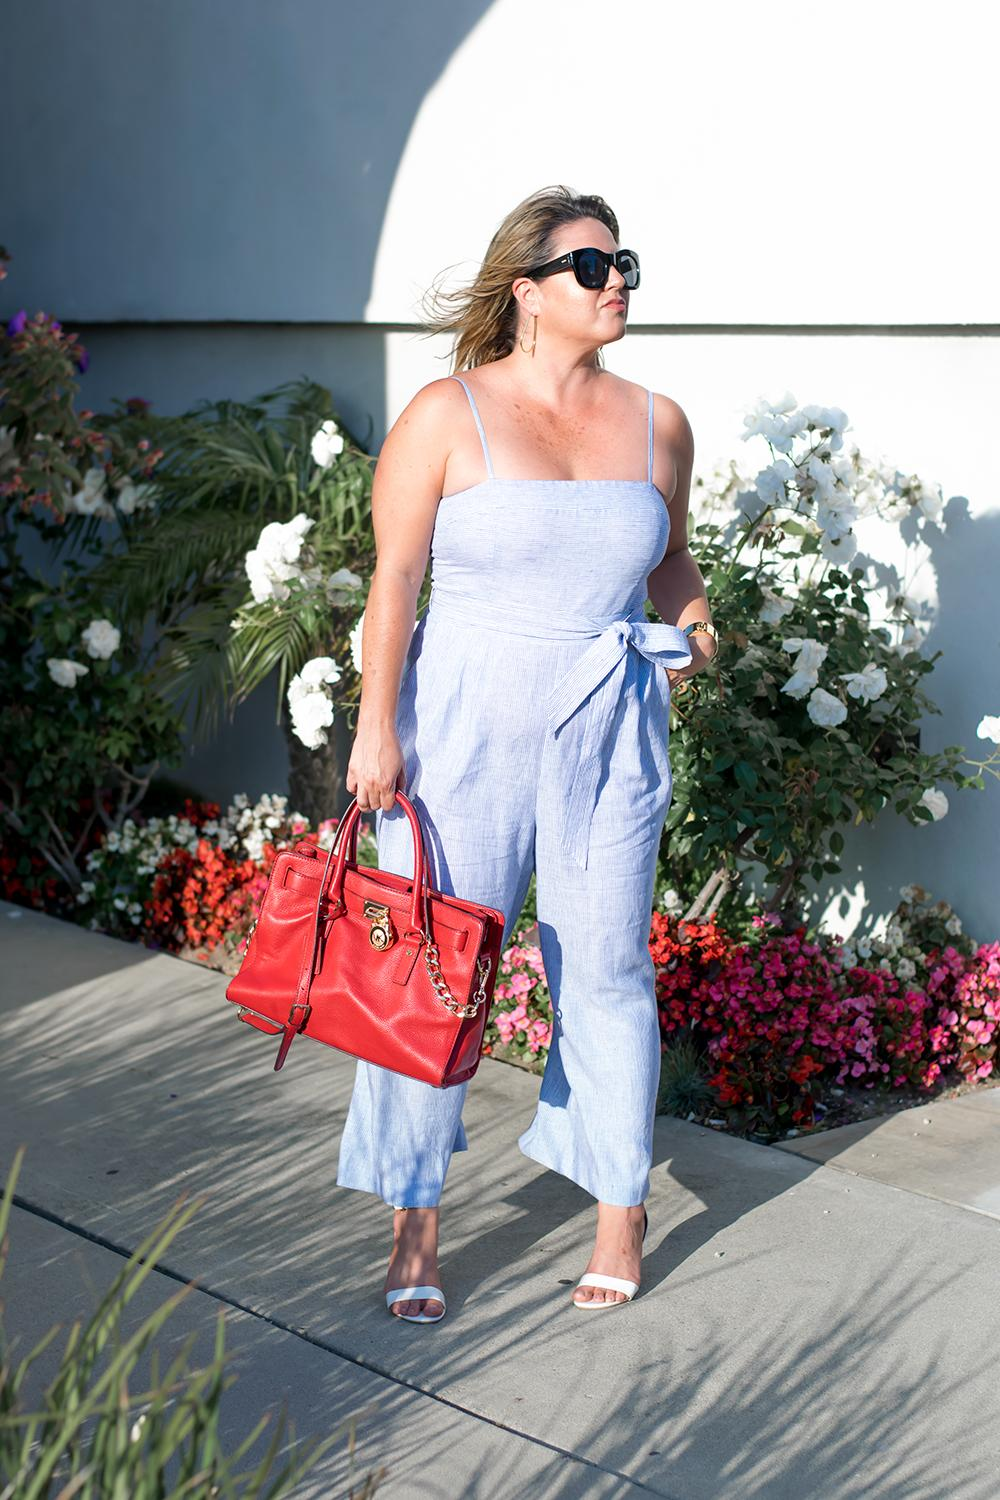 J.Crew-Striped-Linen-Jumpsuit-with-Tie-The-Biggest-Summer-Trends-for-2017-Barefoot-in-LA-Fashion-Blog-Style-Ideas-Outfits_1219